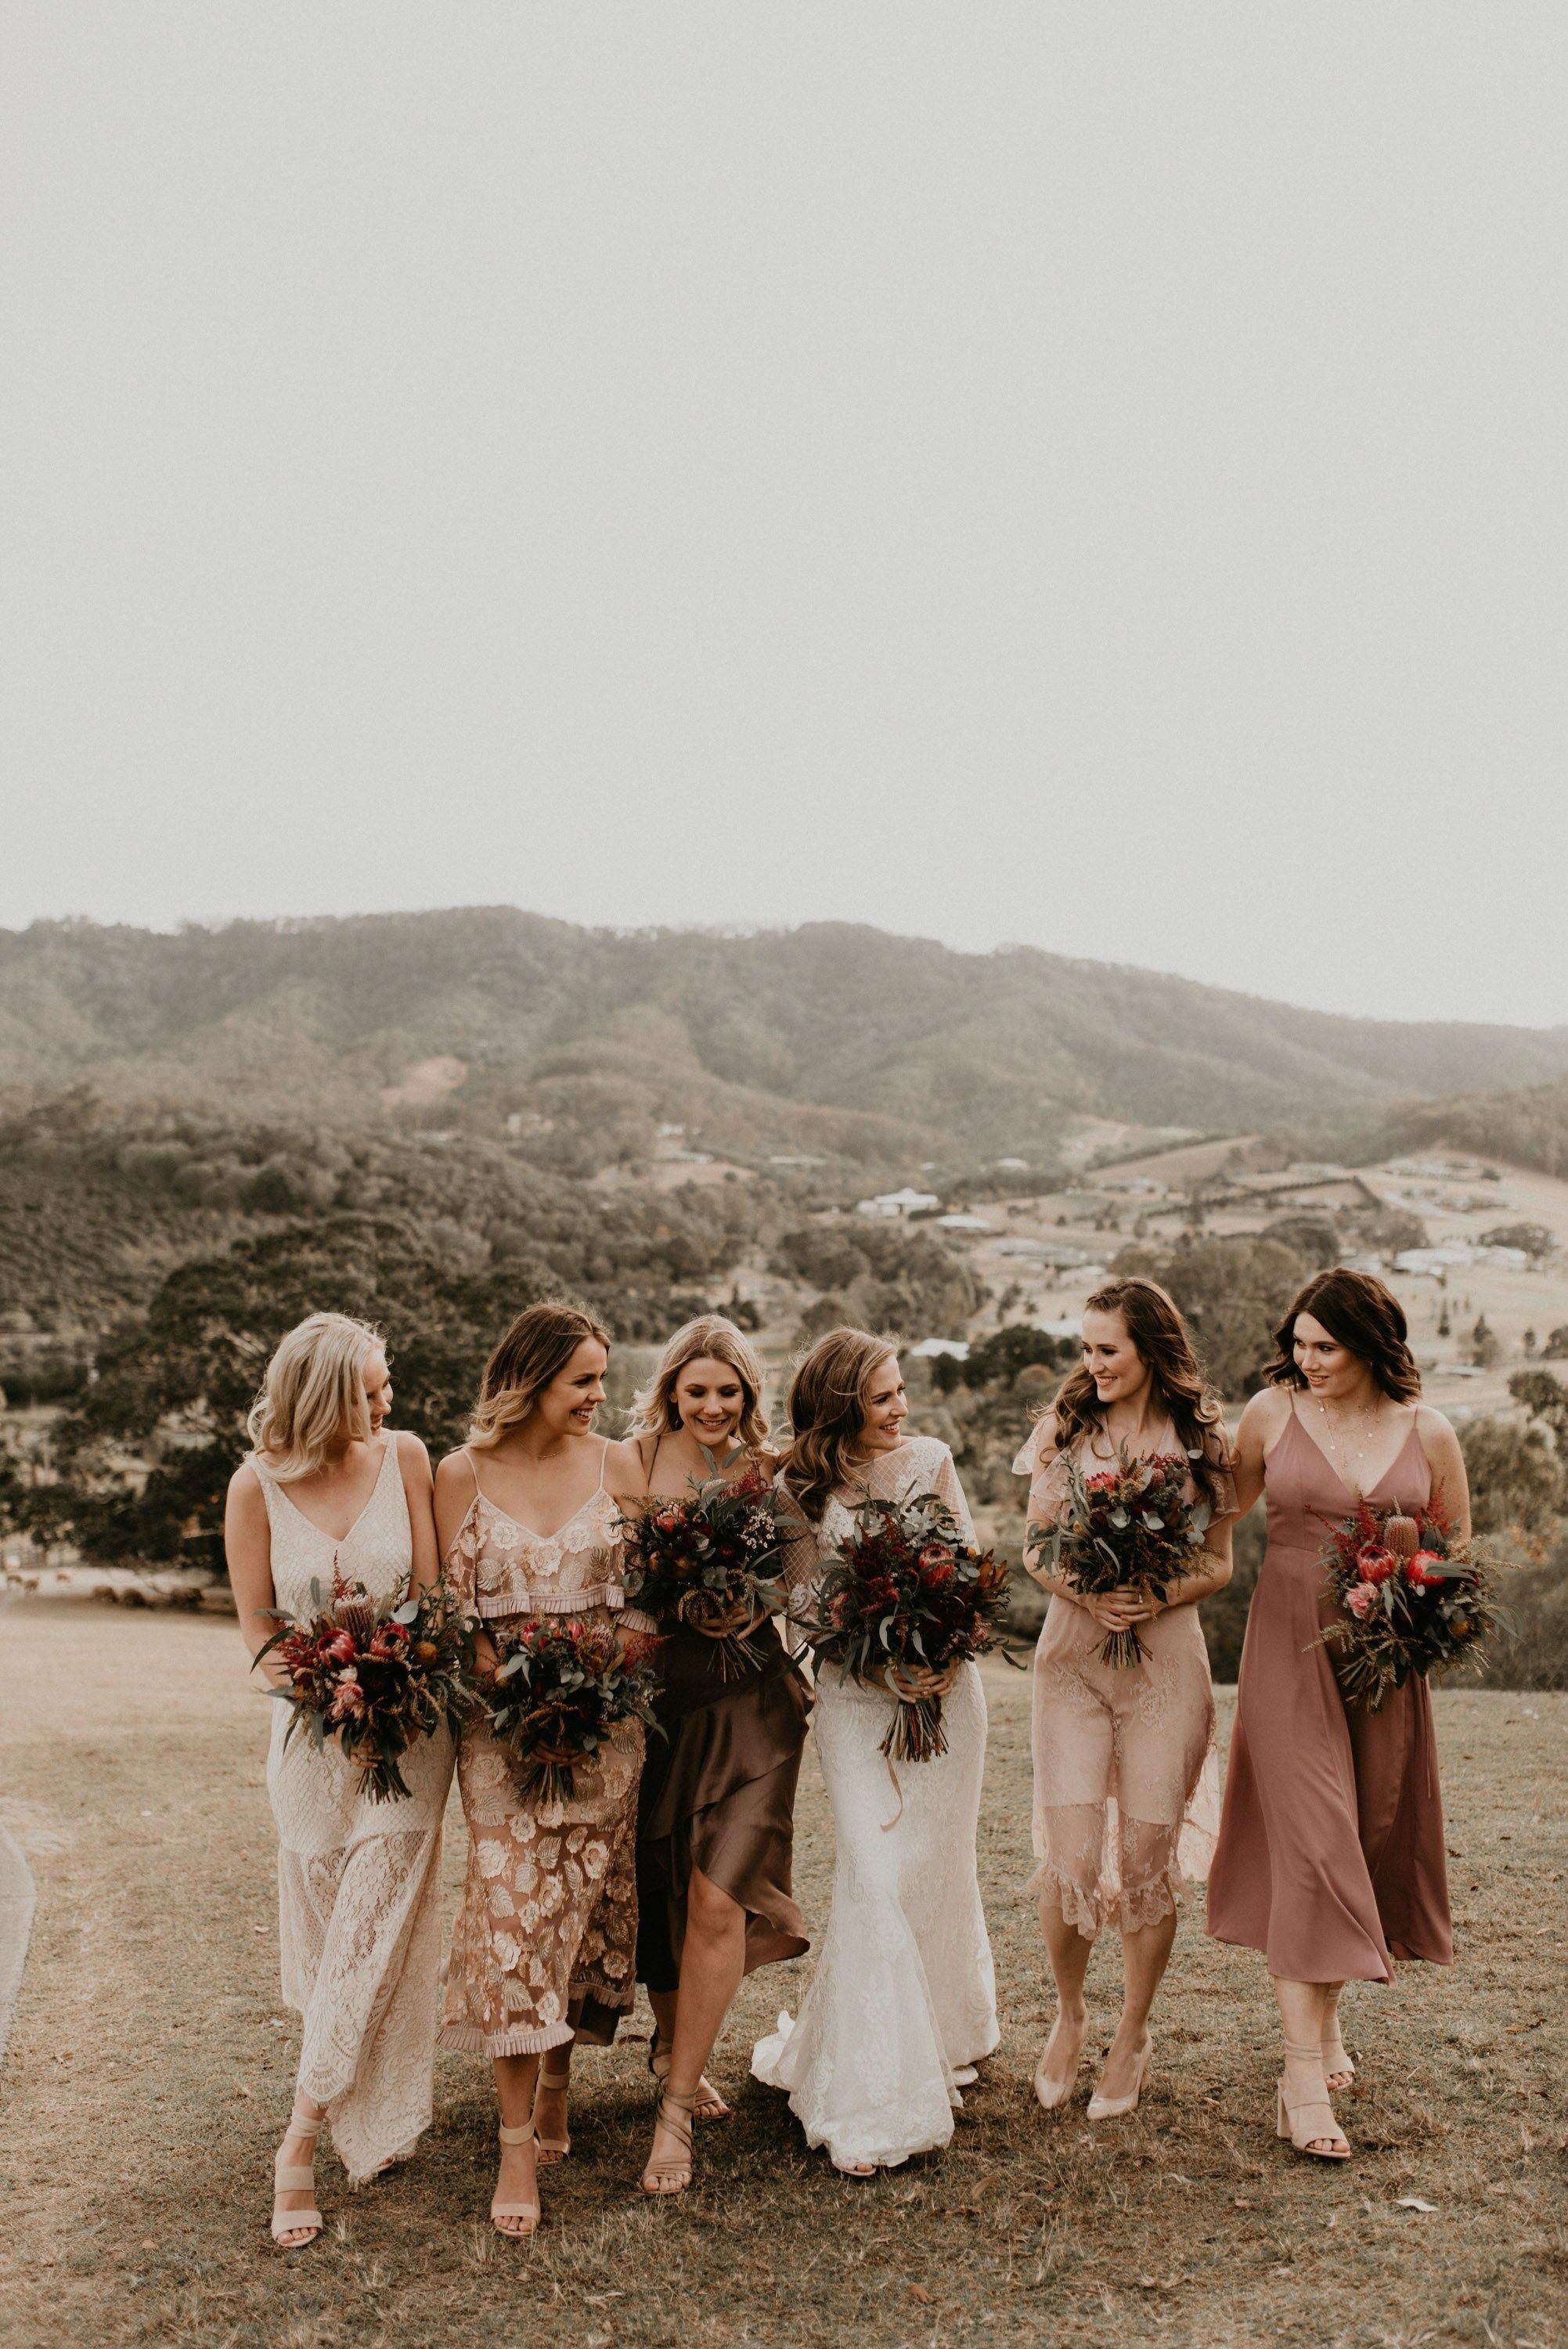 24 Awesome Wedding Photography Sales Books In 2020 Boho Wedding Photography Vintage Wedding Photography Australia Wedding